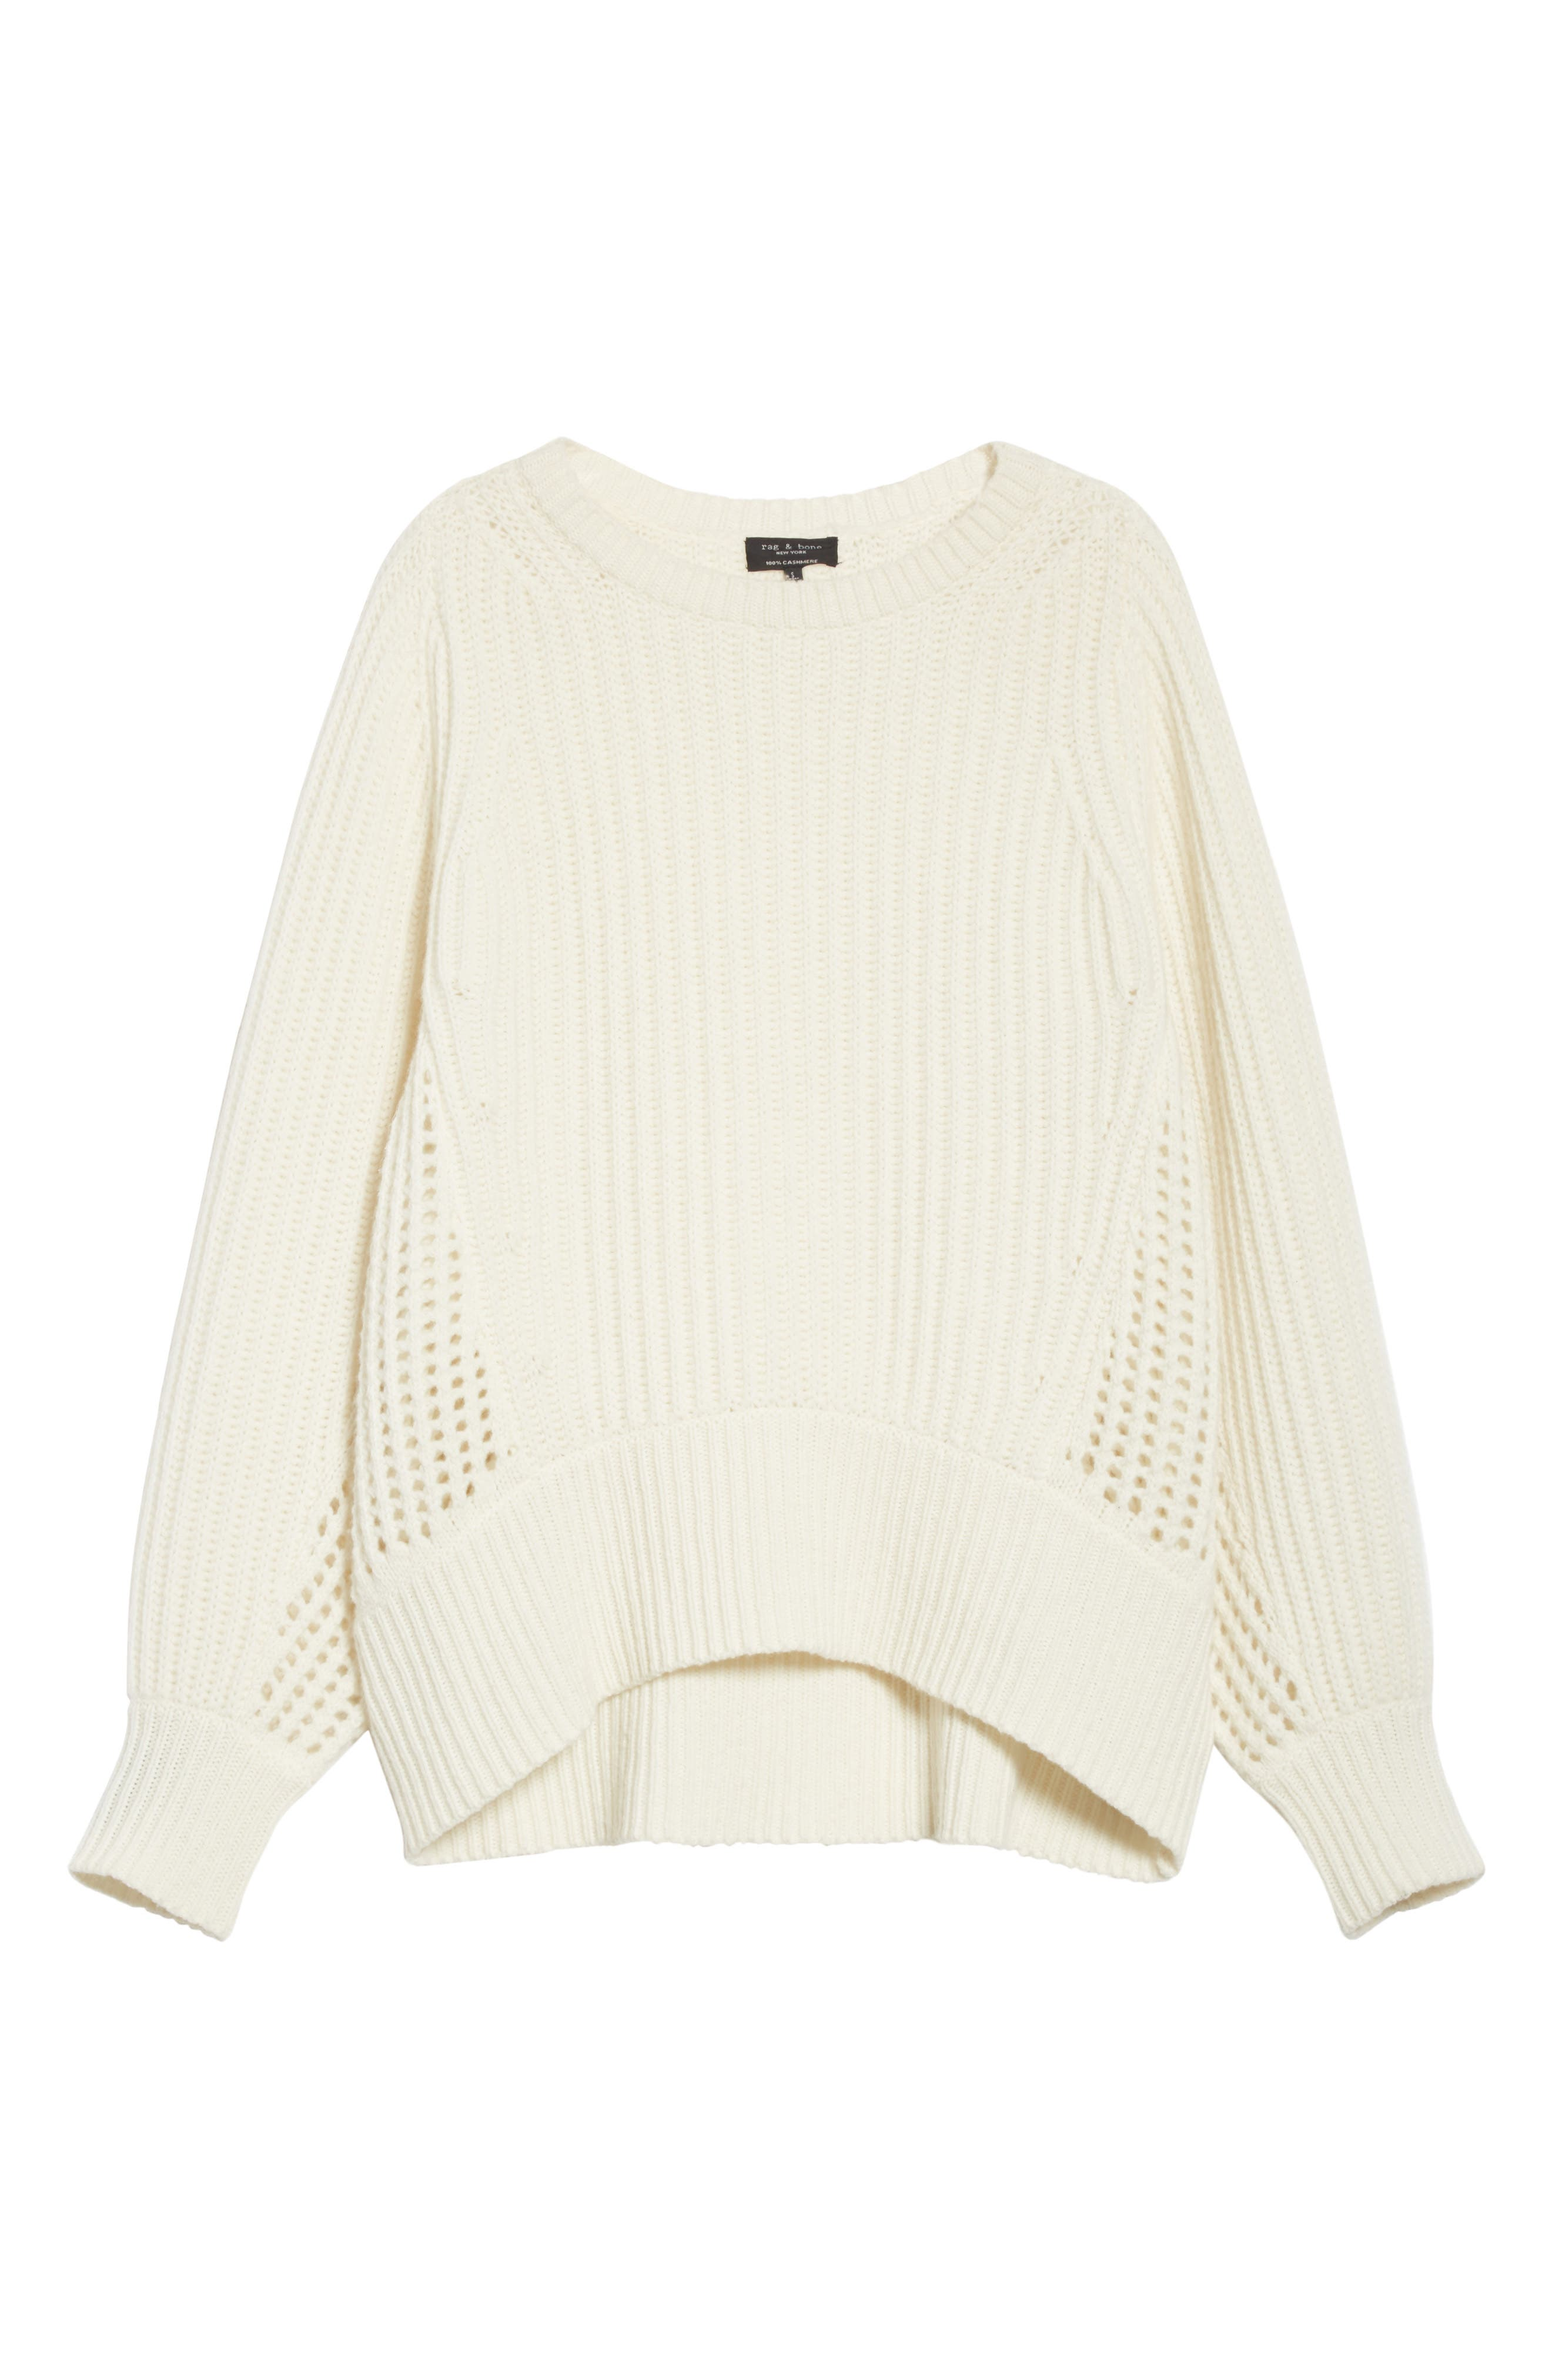 Athena Cashmere Pullover,                             Alternate thumbnail 12, color,